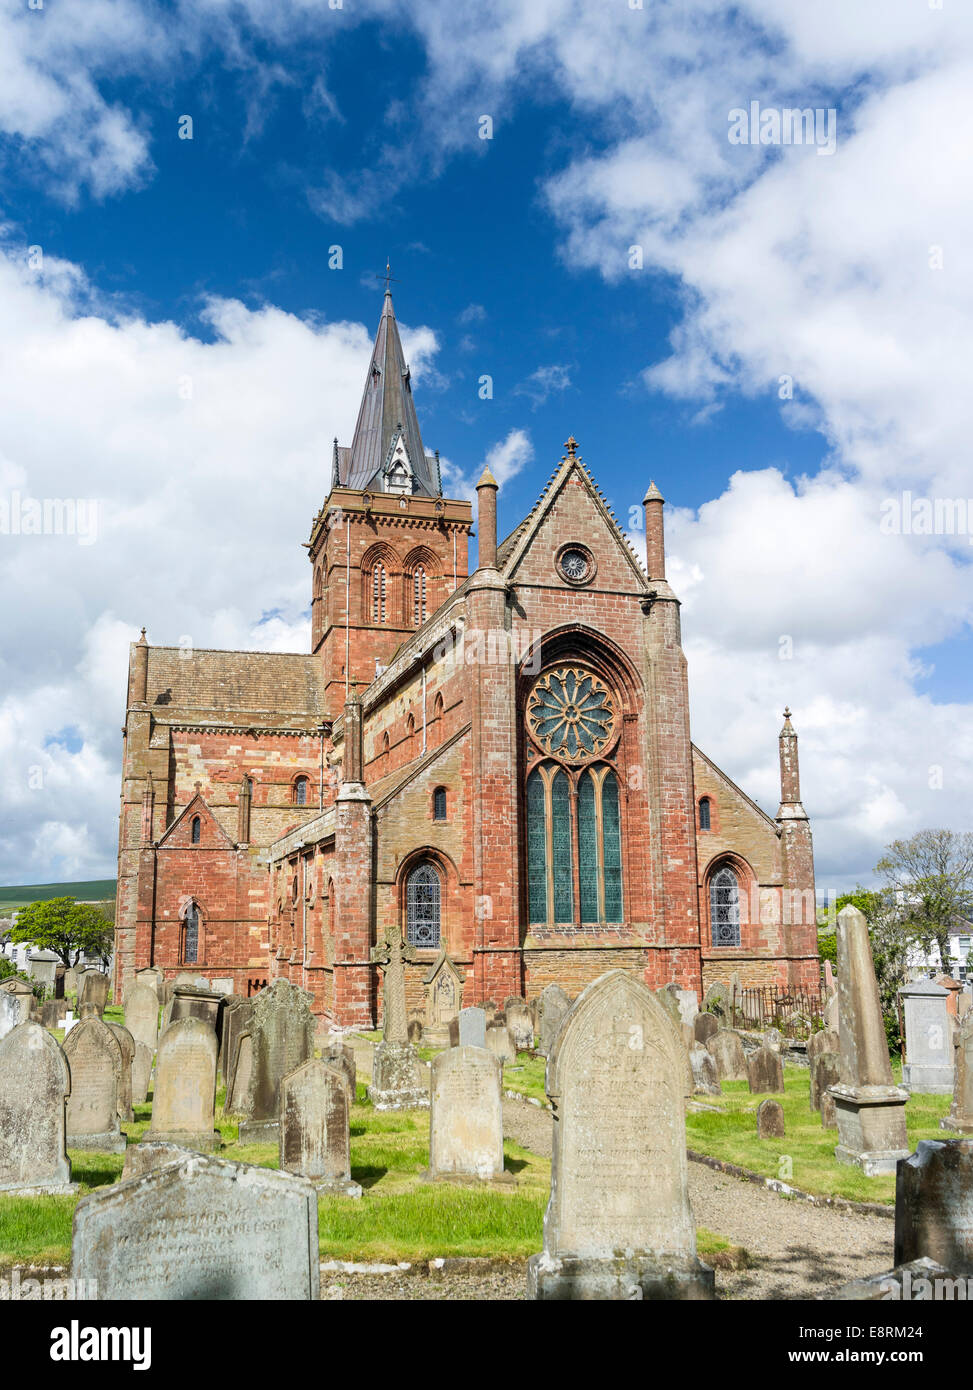 St. Magnus Cathedral, famous for its use of different colored stones. Kirkwall, Orkney islands, Scotland. - Stock Image